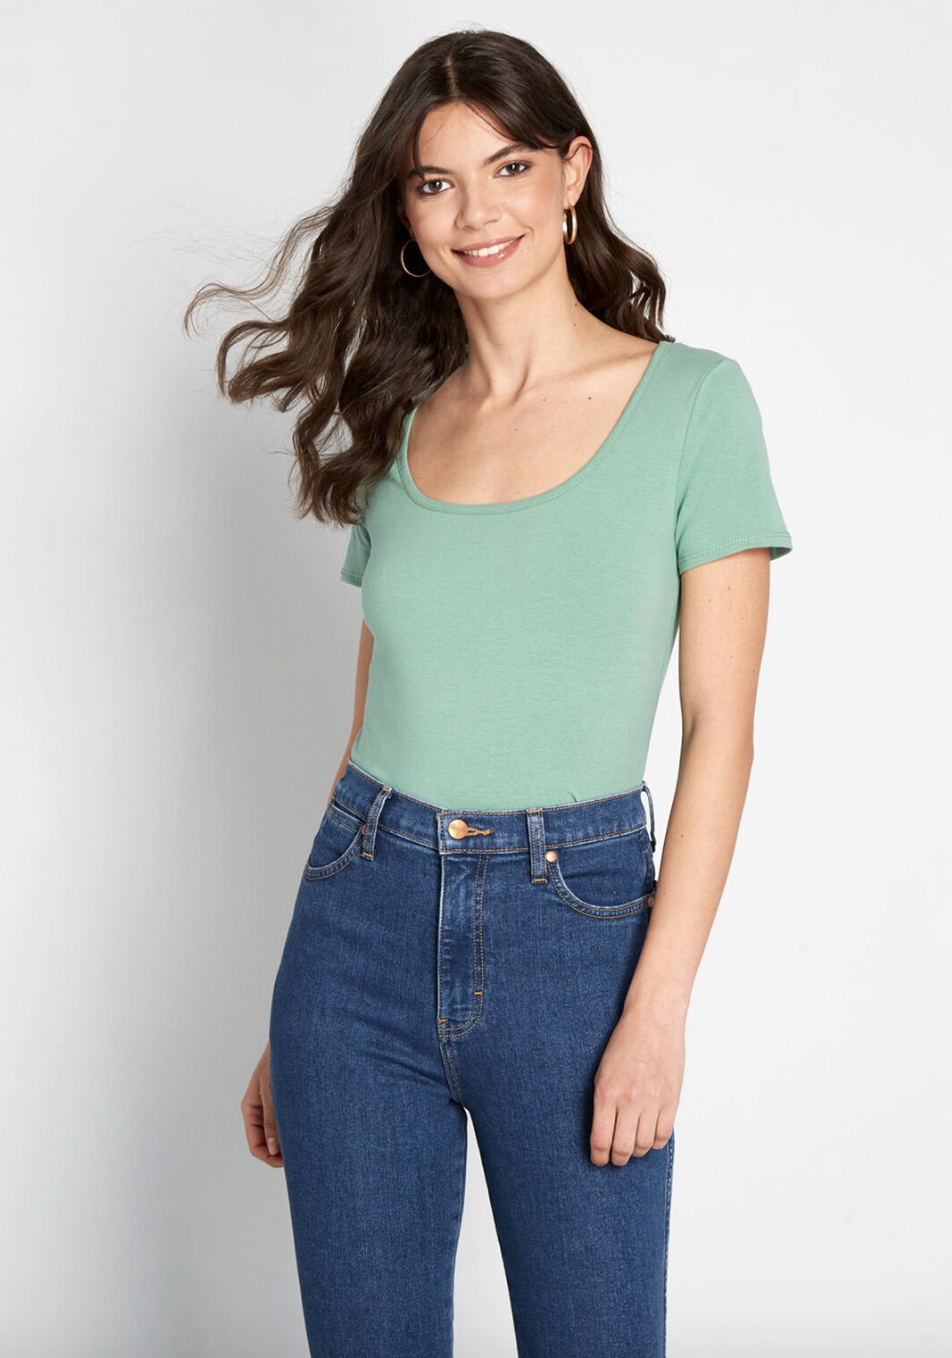 A model in a short-sleeved mint green top